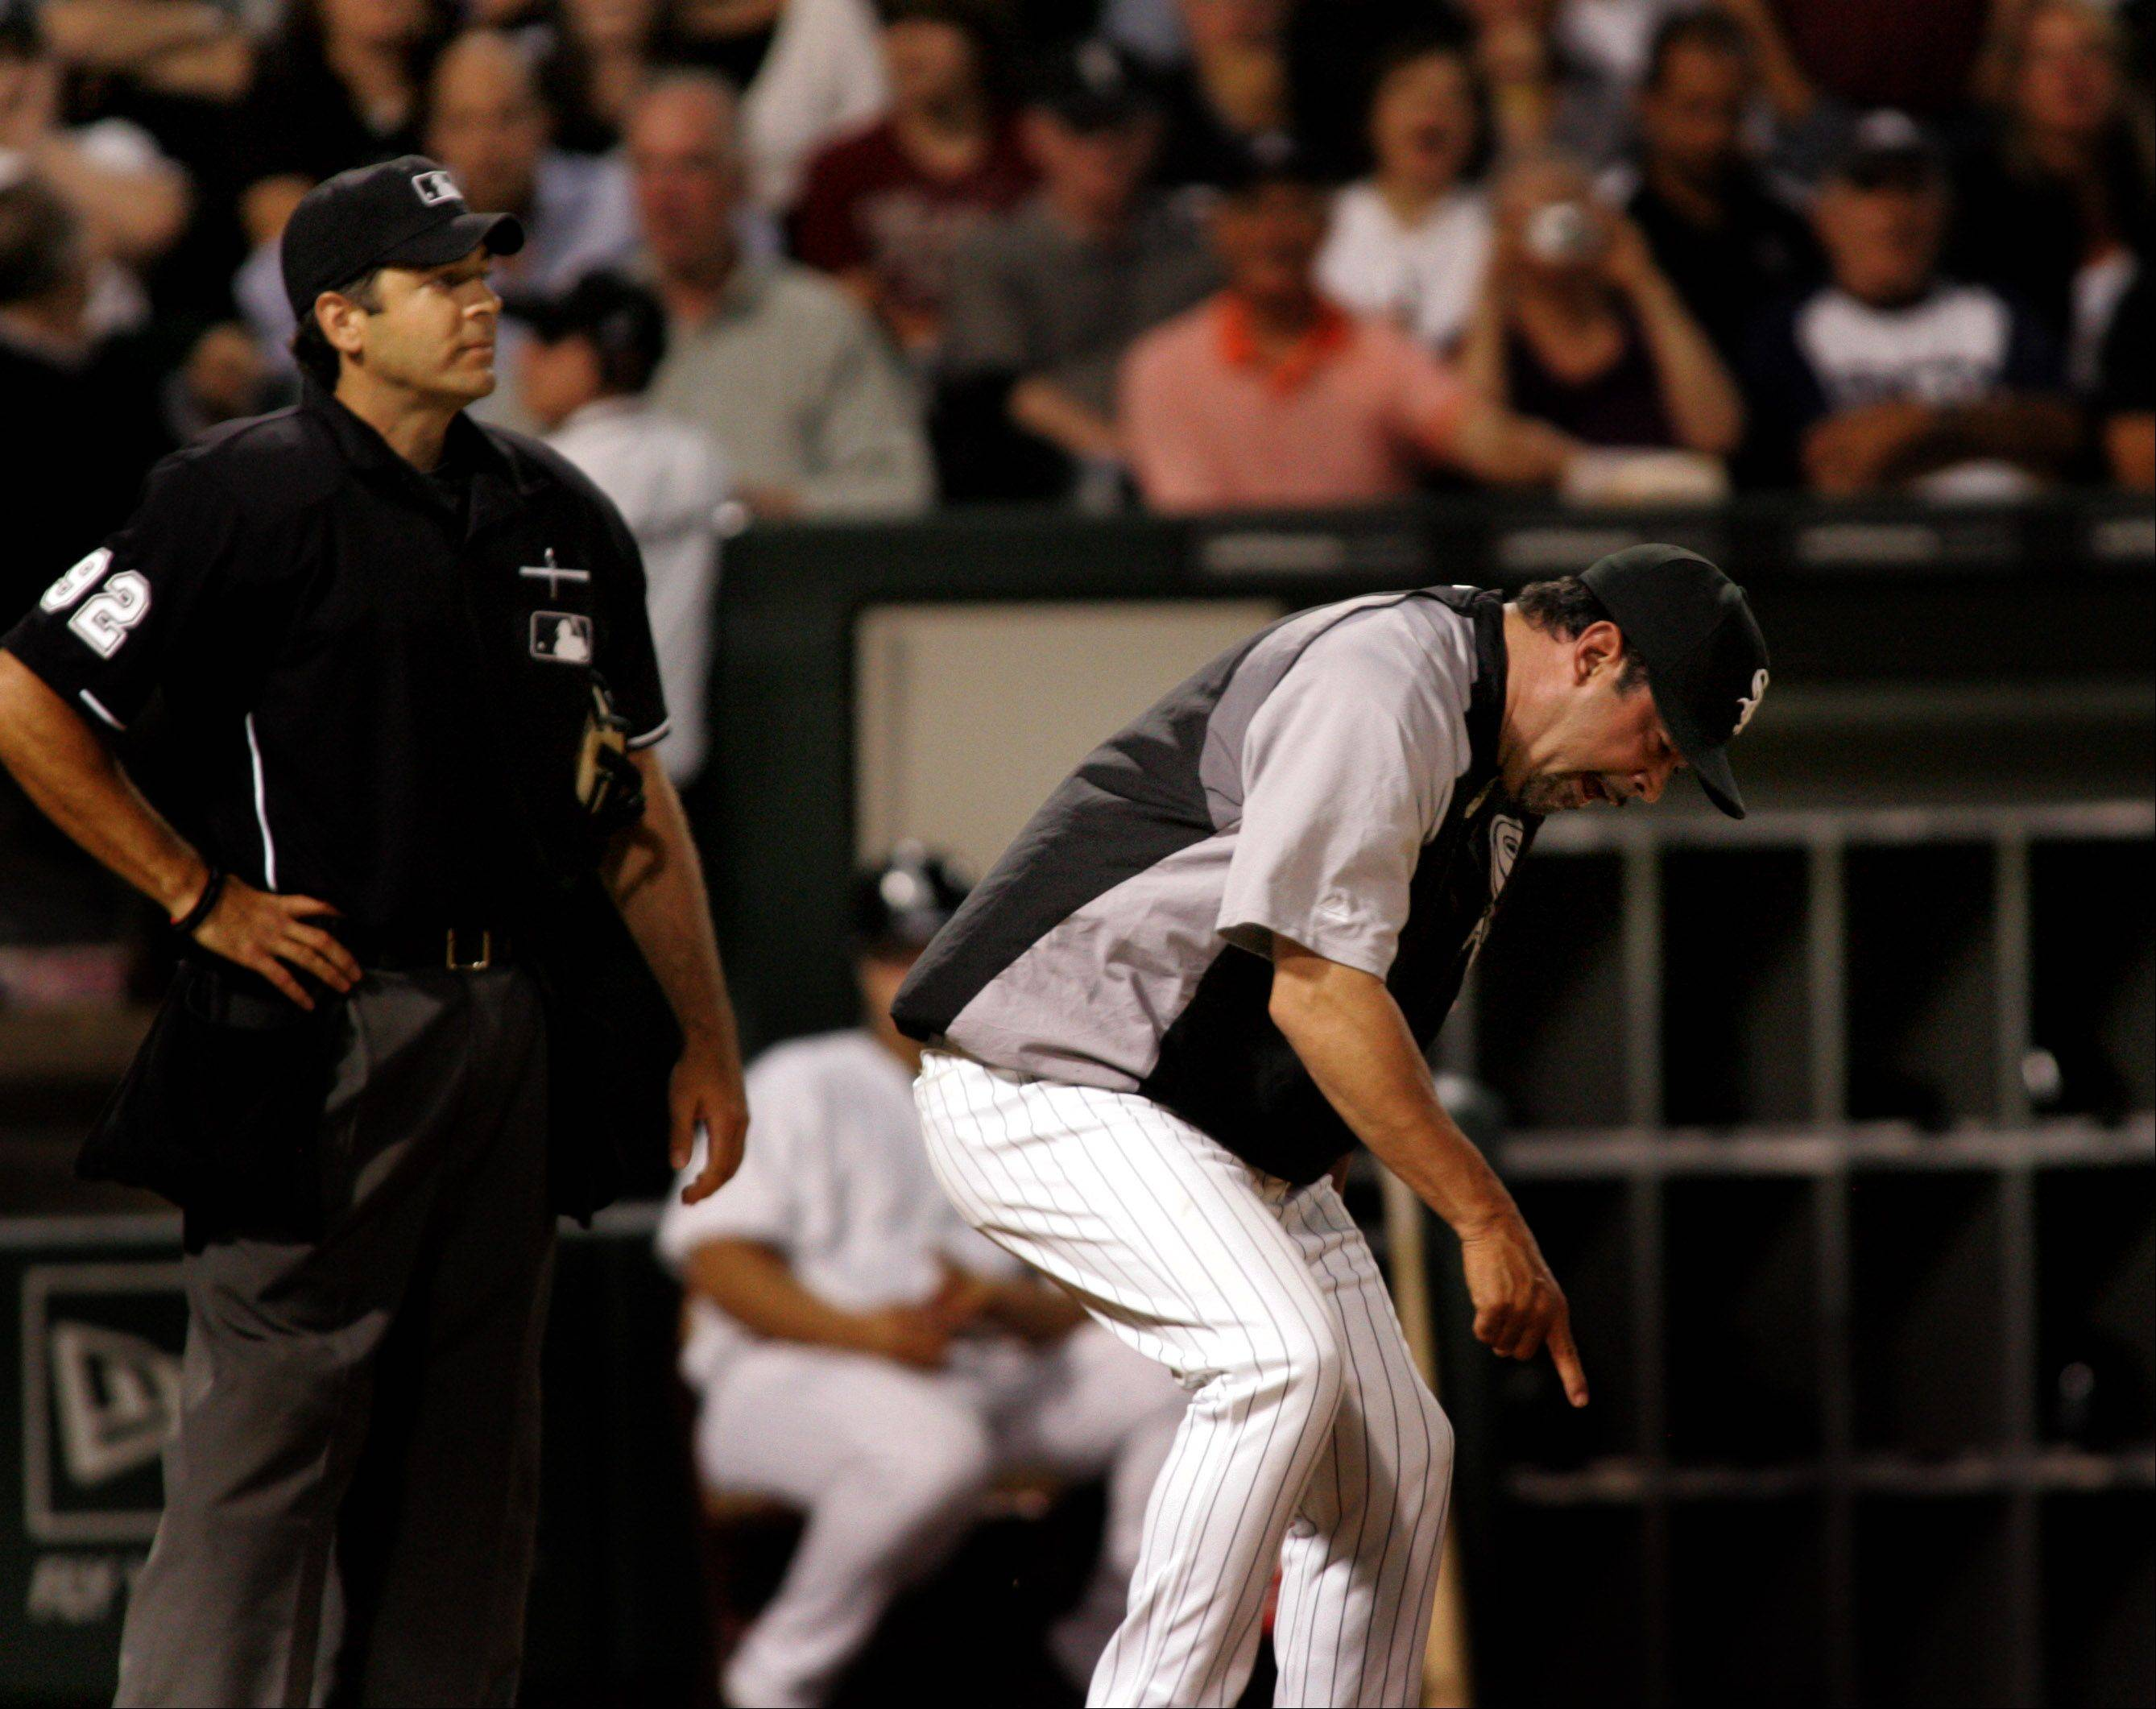 Ozzie Guillen, manager of the Chicago White Sox questions a call in the 6th inning and gets thrown out by home plate ump James Hoye during game one of the three game series